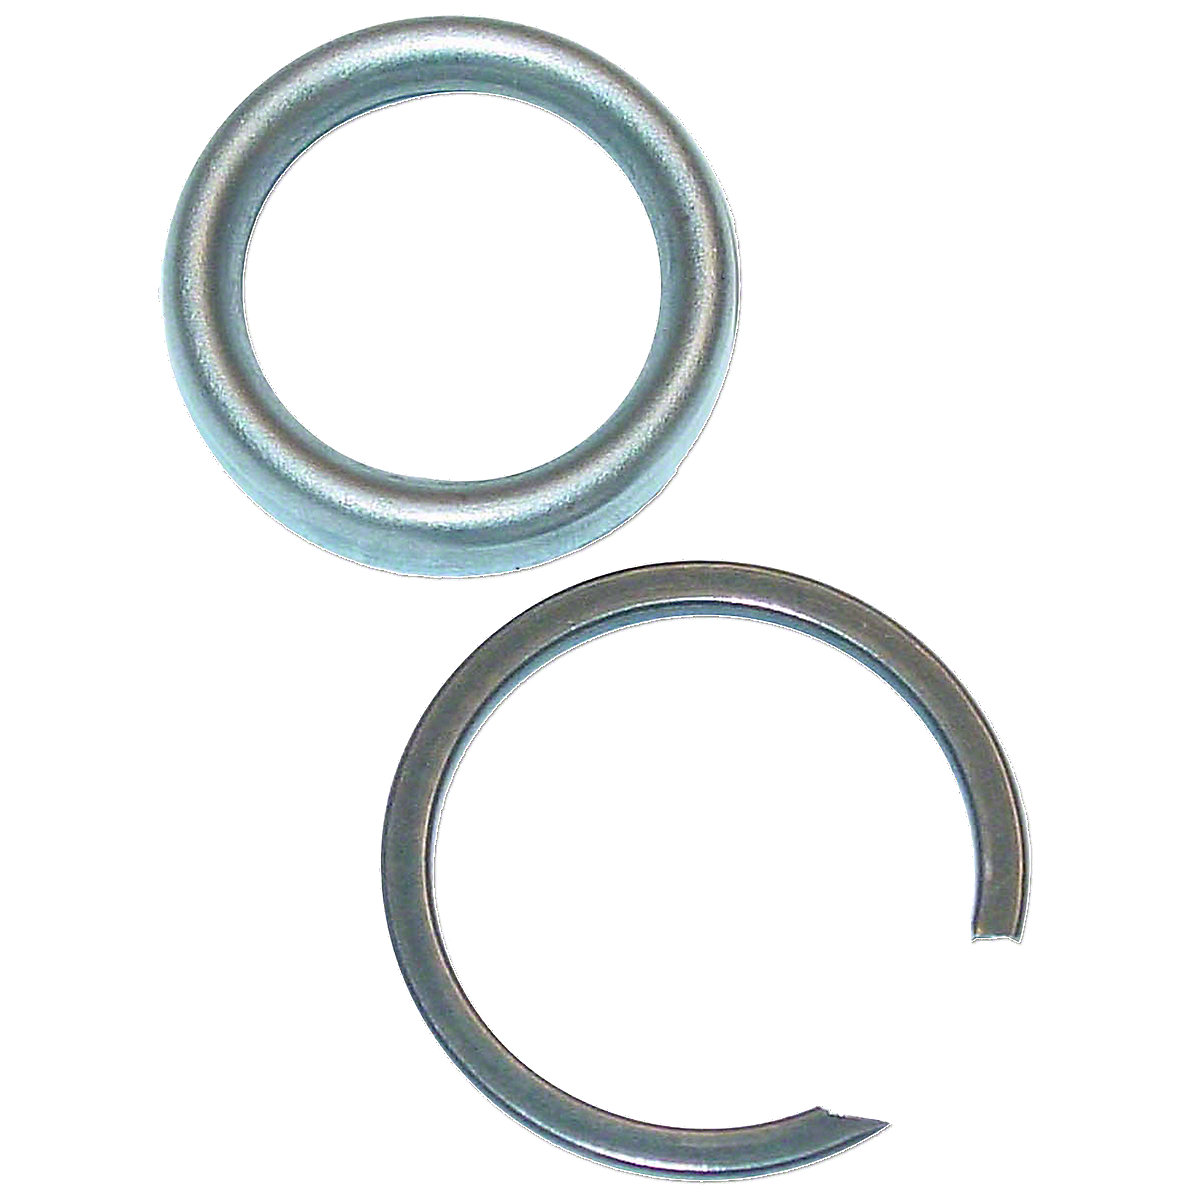 Gear Shift Lever Washer and Snap Ring Kit For Allis Chalmers: B, C, CA, D10, D12, D14, D15, G, WC, WD, WD45, WF.